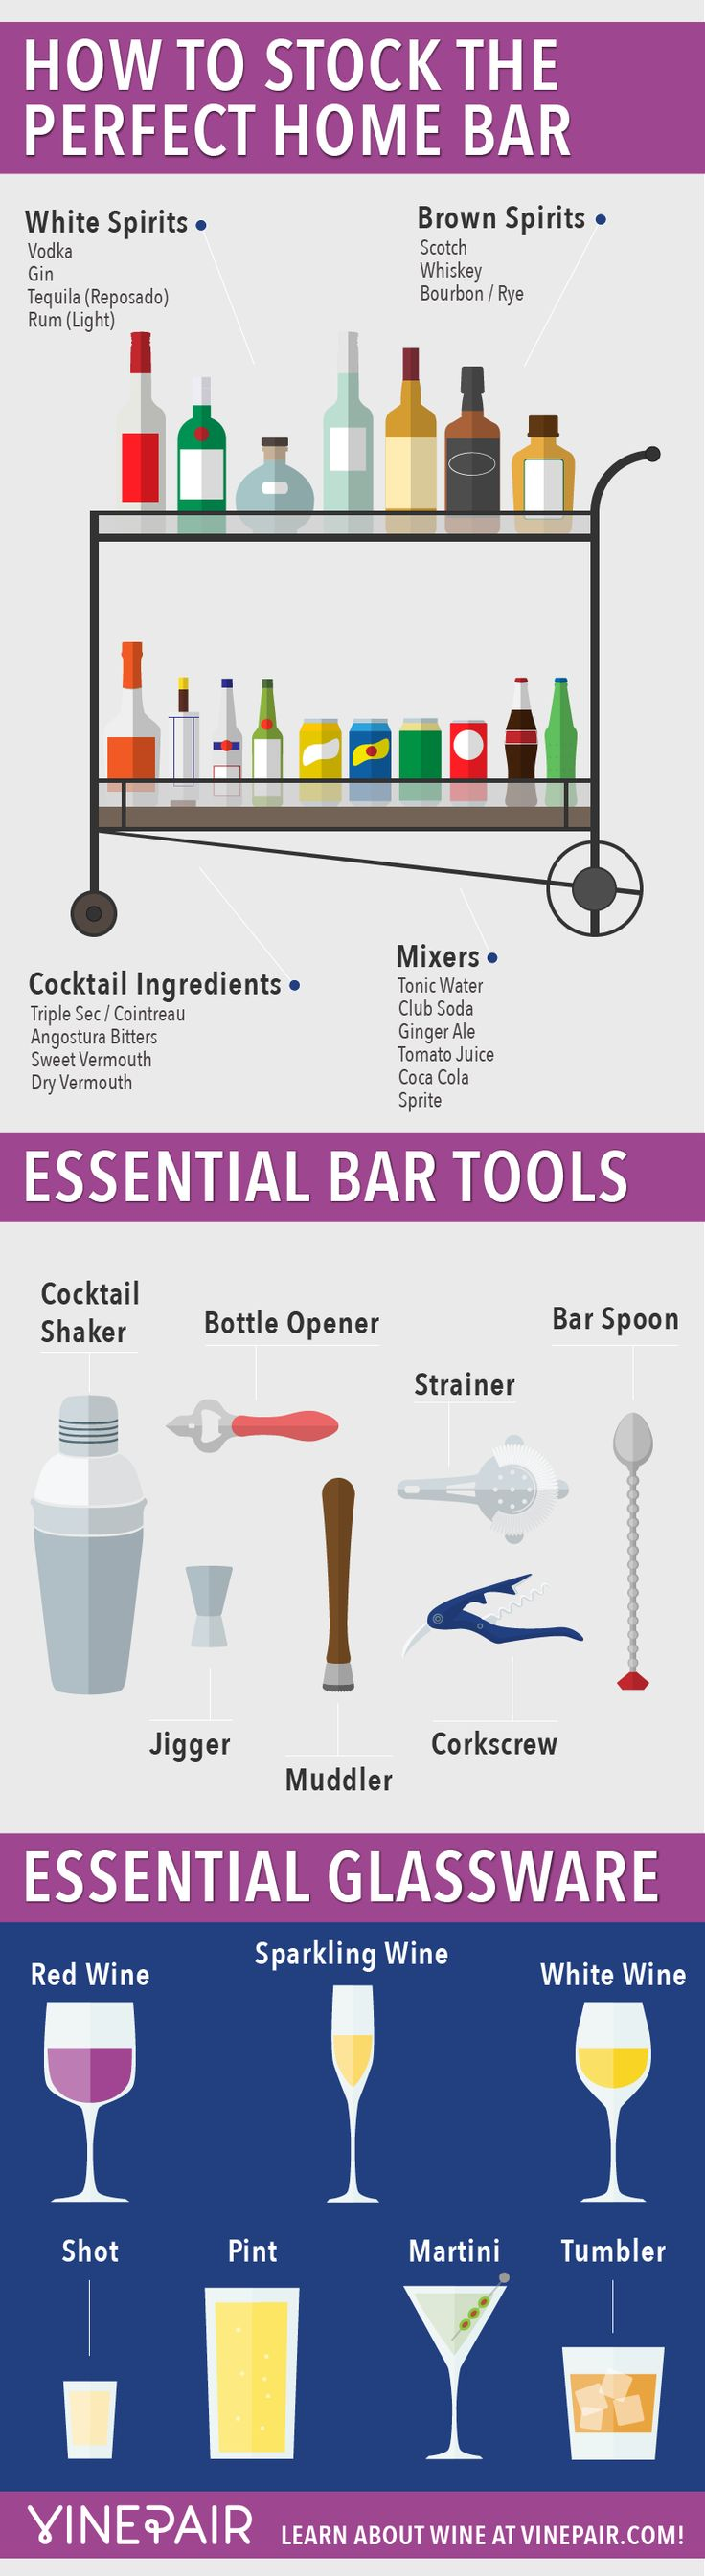 How To Stock The Perfect Home Bar Infographic www.LiquorList.com @LiquorListcom #LiquorList